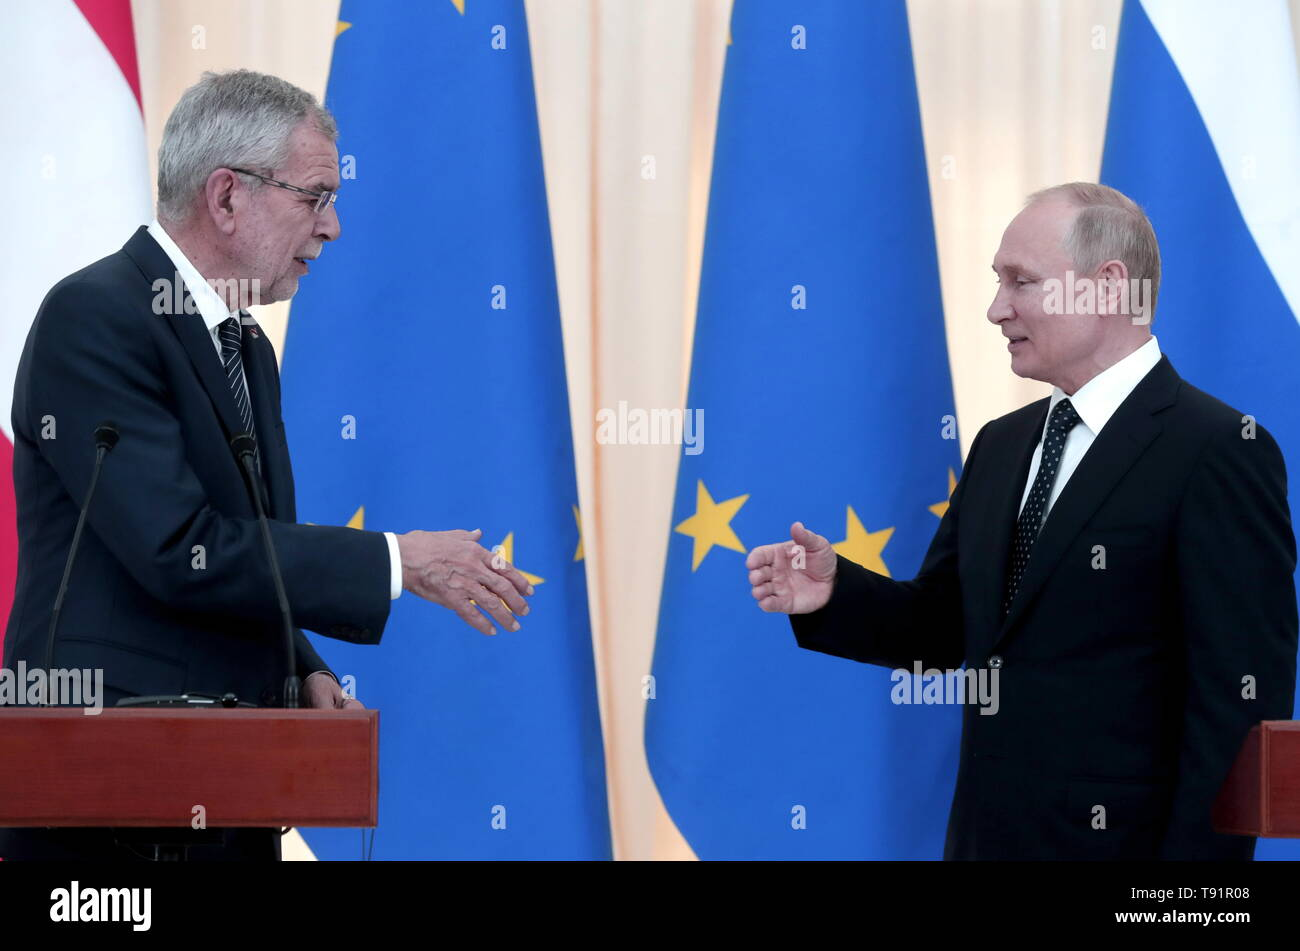 Sochi, Russia. 15th May, 2019. SOCHI, RUSSIA - MAY 15, 2019: Austria's President Alexander Van der Bellen (L) shakes hands with Russia's President Vladimir Putin during a joint news conference following their talks, at the Rus health resort. Mikhail Metzel/TASS Credit: ITAR-TASS News Agency/Alamy Live News - Stock Image